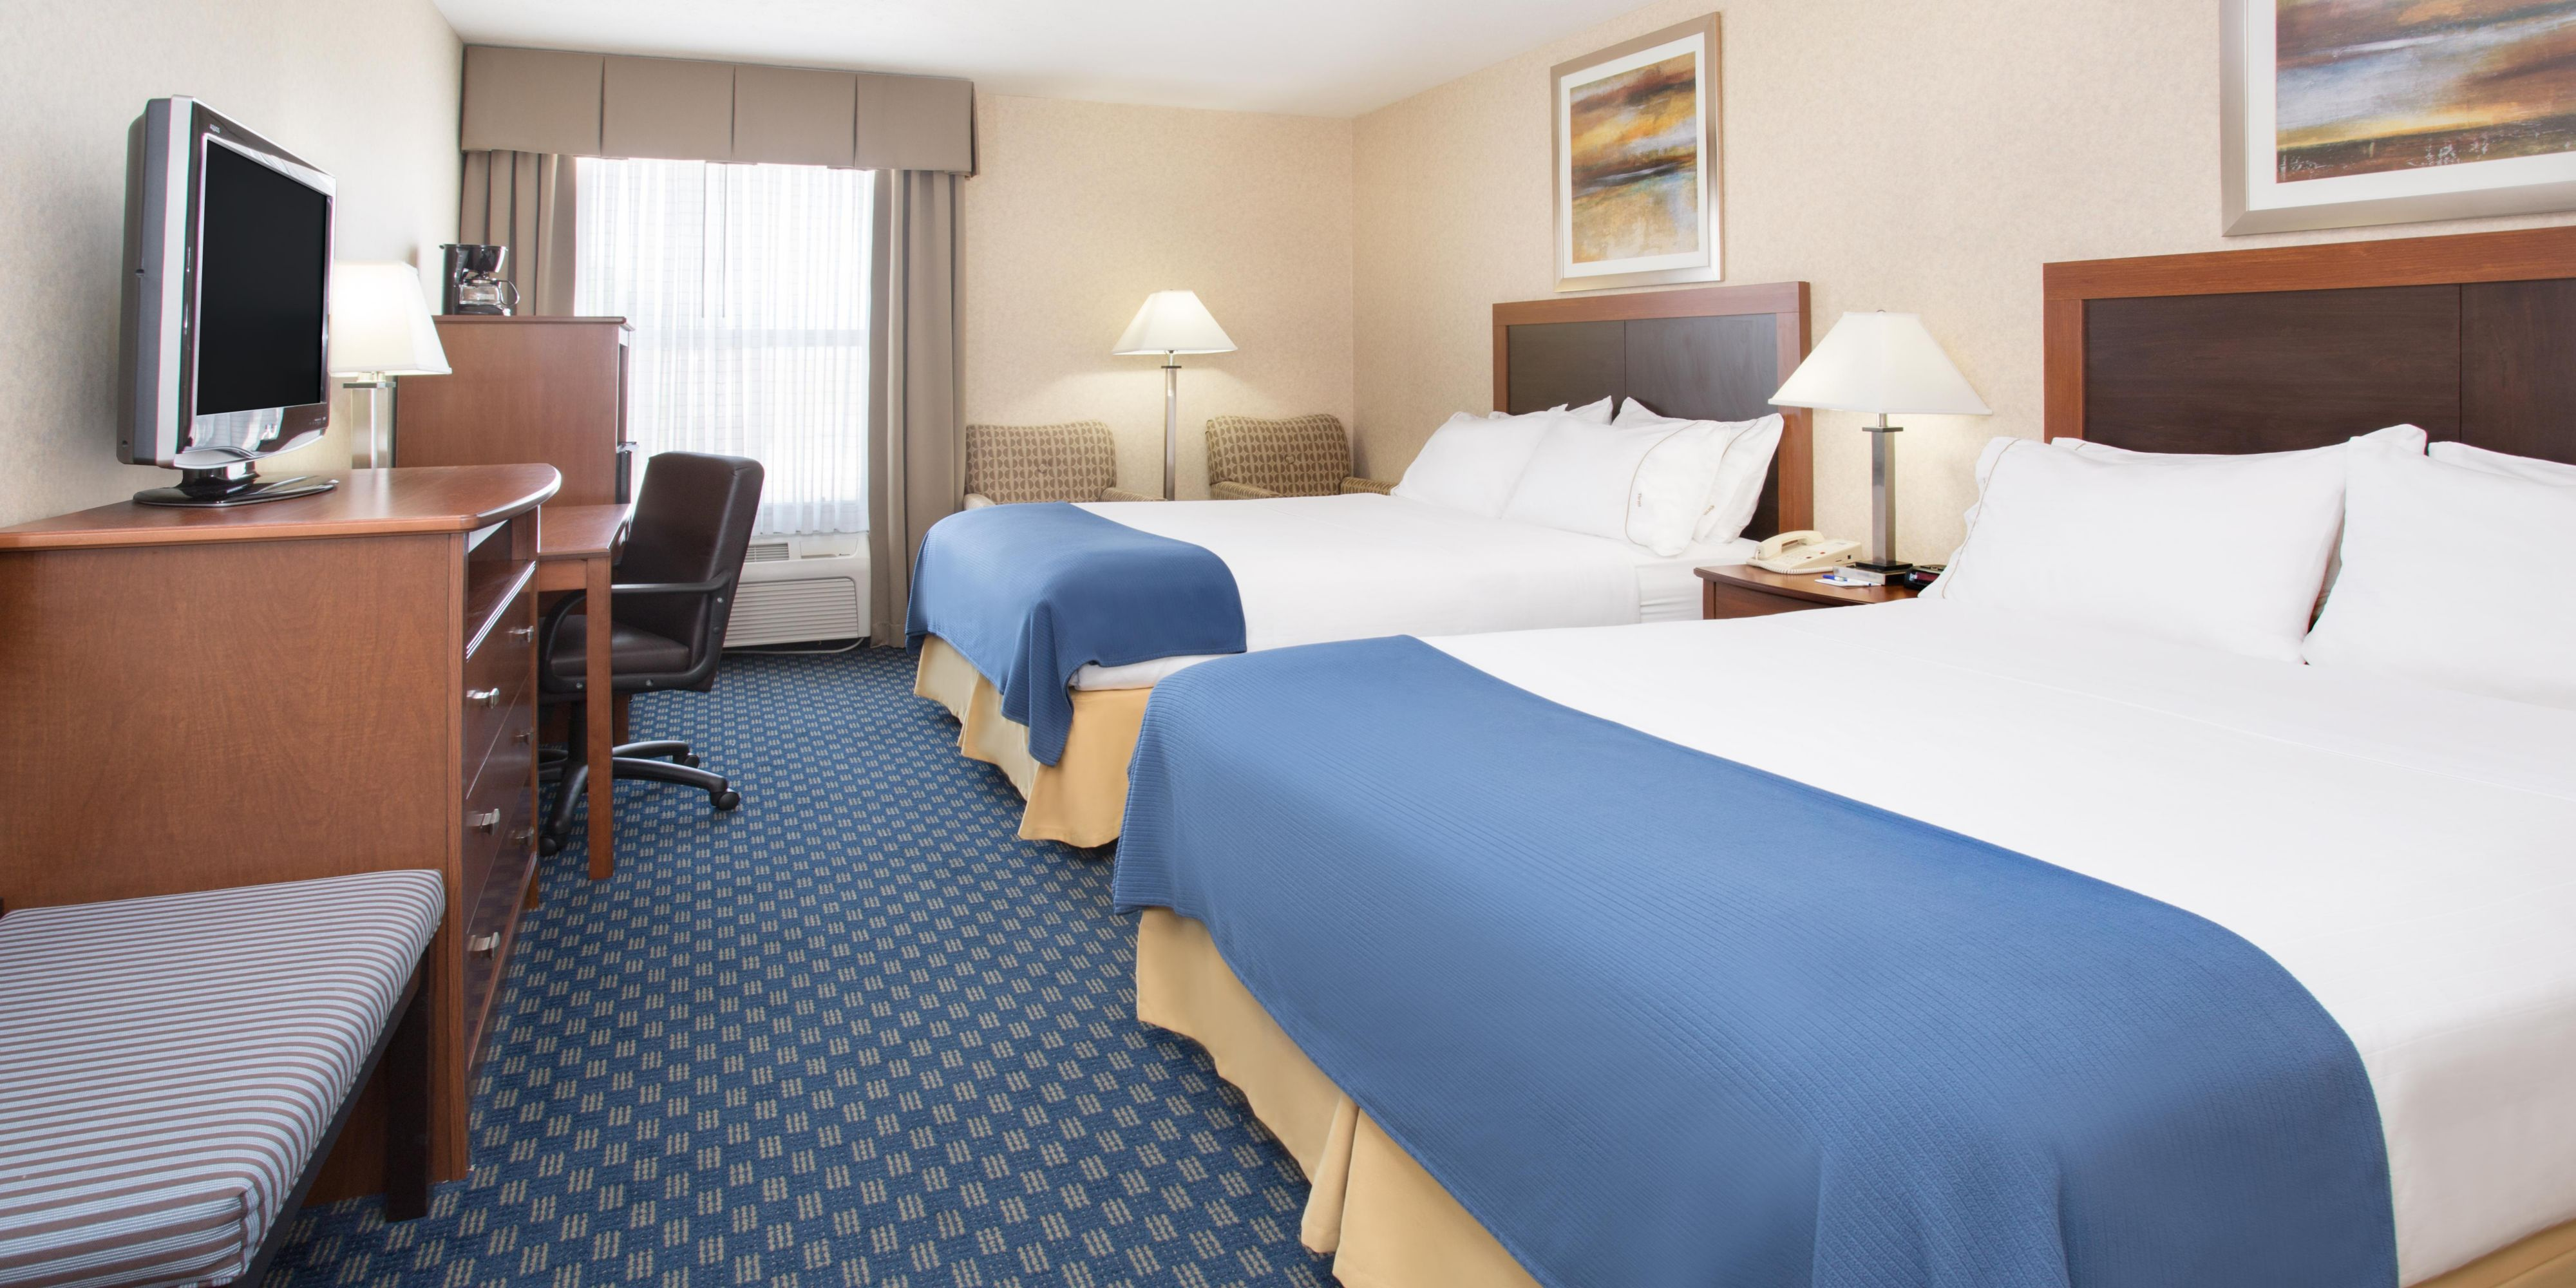 capitol us wi lnhmd express holidayinnexpress ihg hotels beltway hoteldetail comfort by suites i holiday comforter largo rhinelander and en inn hotel